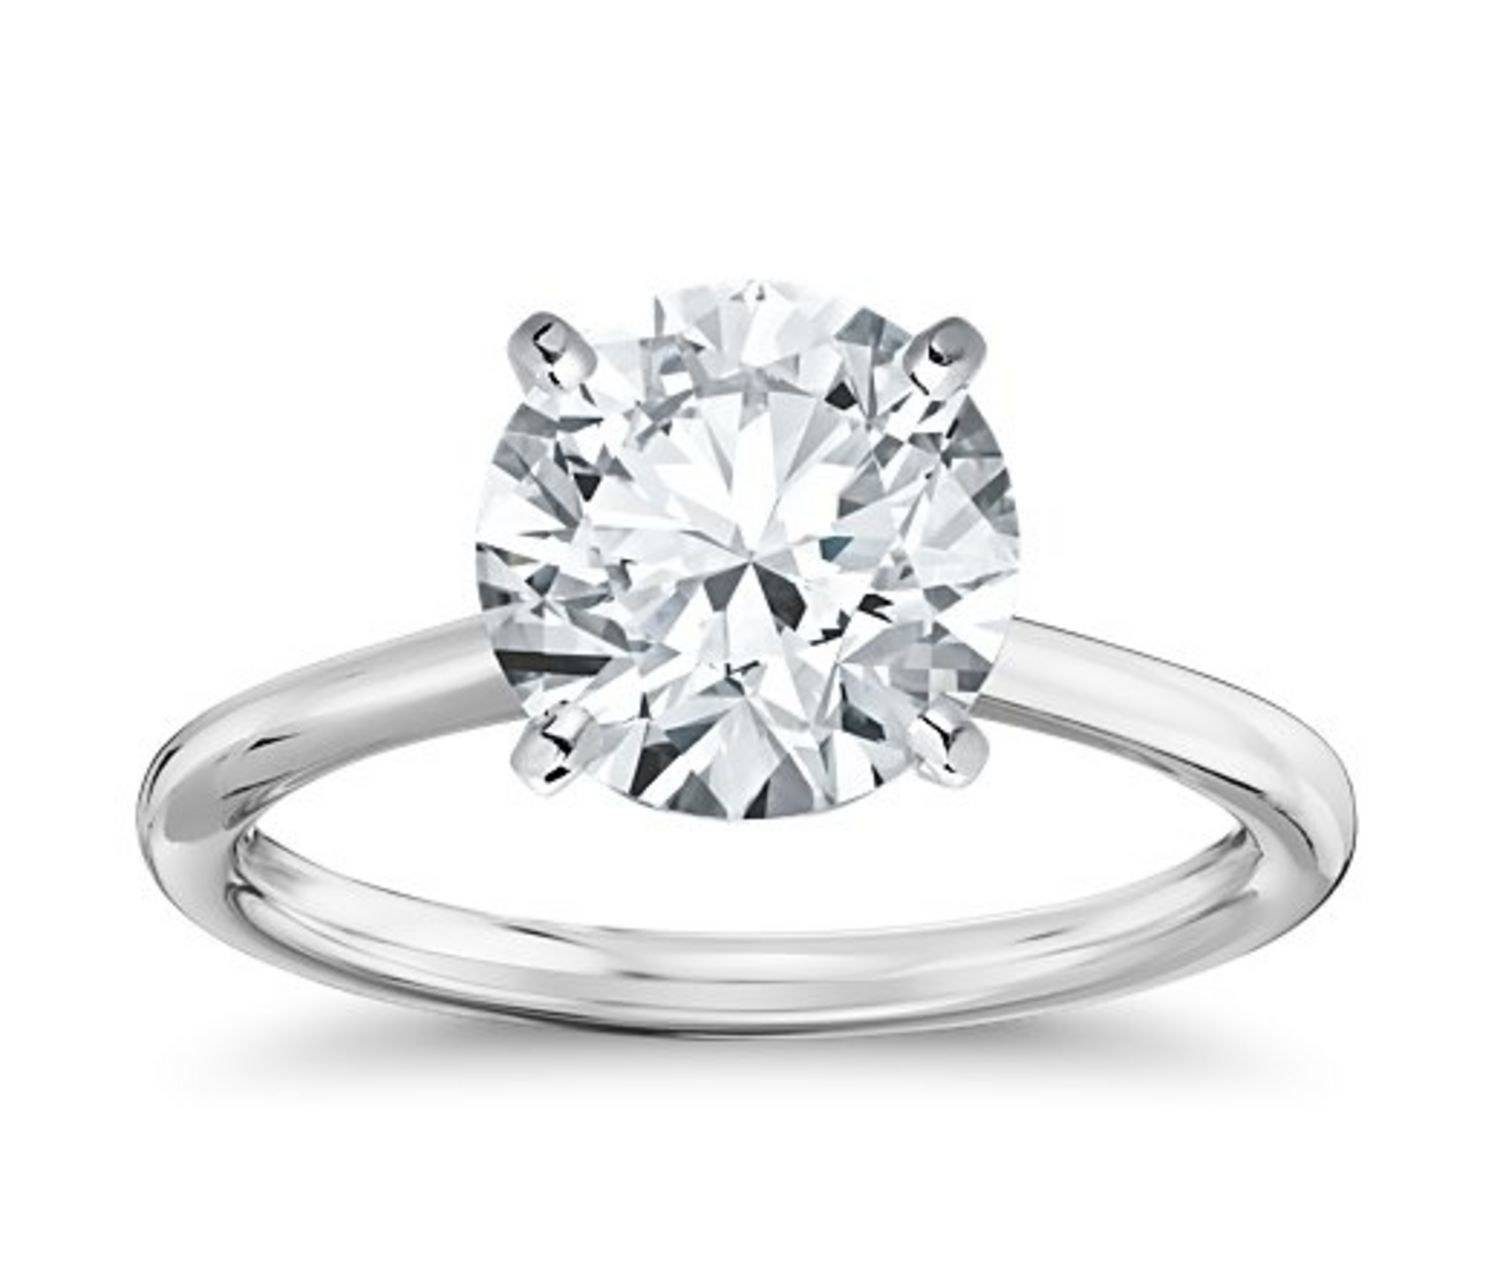 Lauren Conrad's Engagement Ring: 5 Sparklers Inspiredthe Bling Pertaining To One Rings Engagement Rings (View 13 of 15)